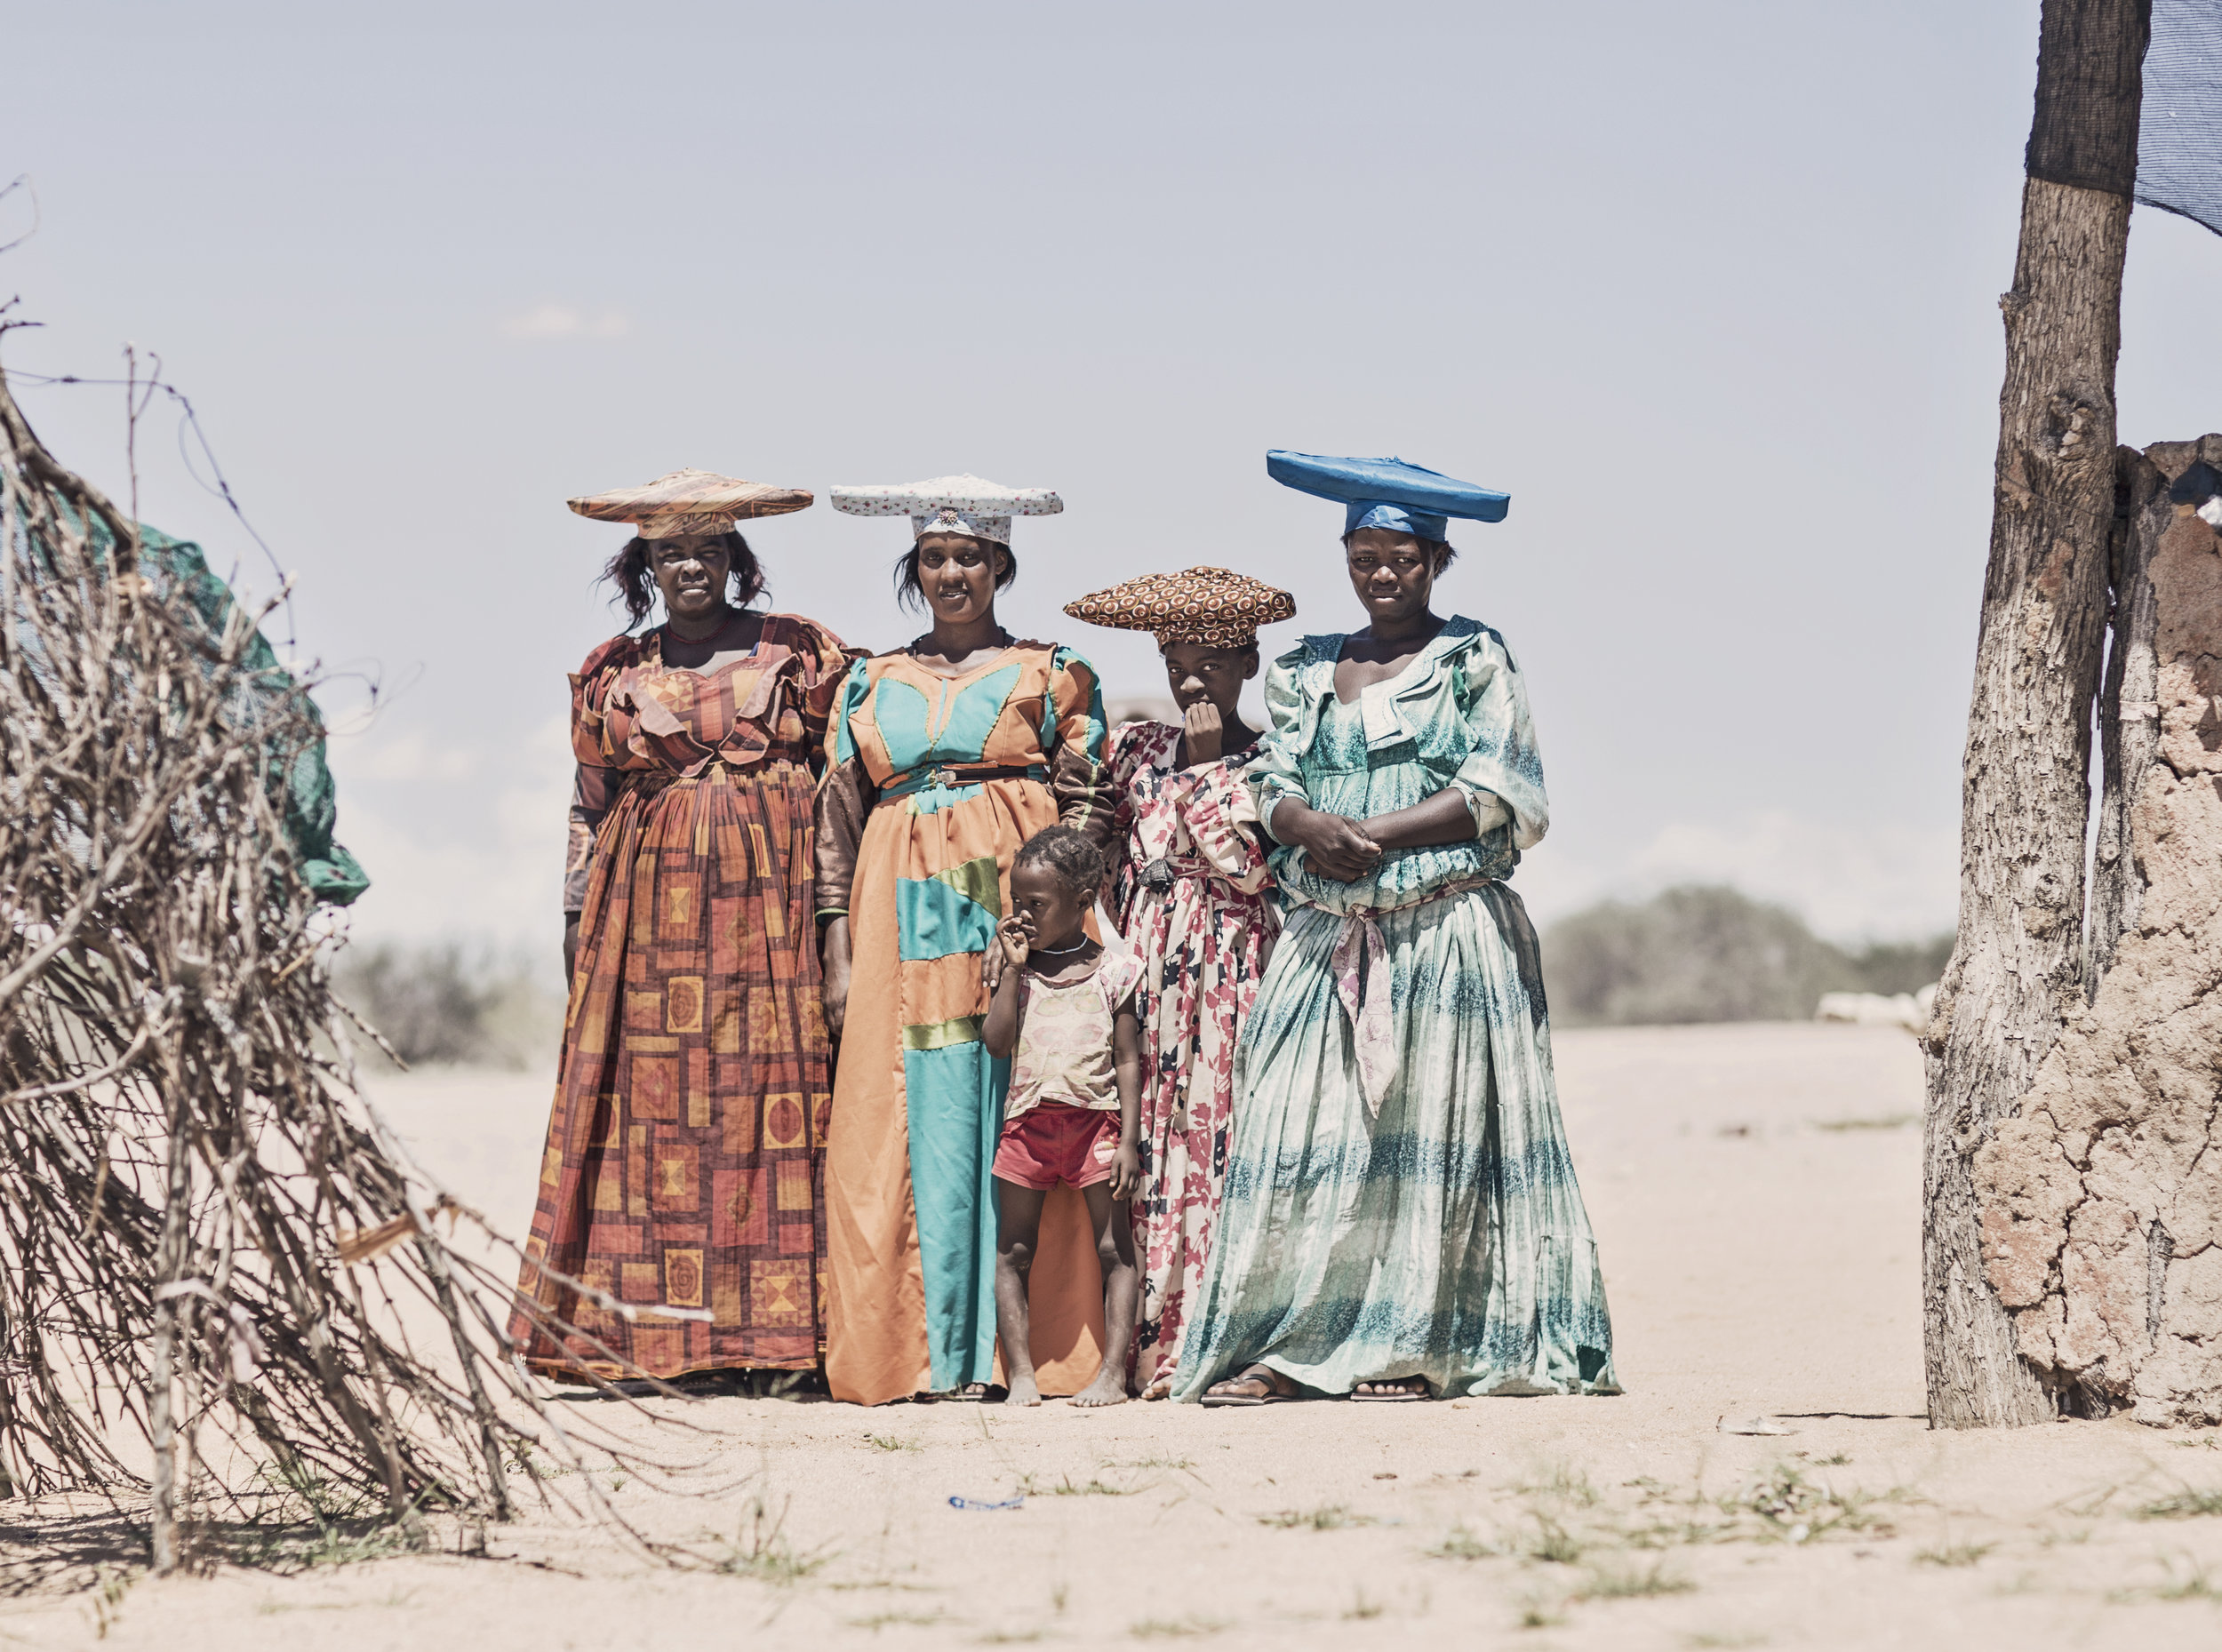 A traditional Herero family in central Namibia.